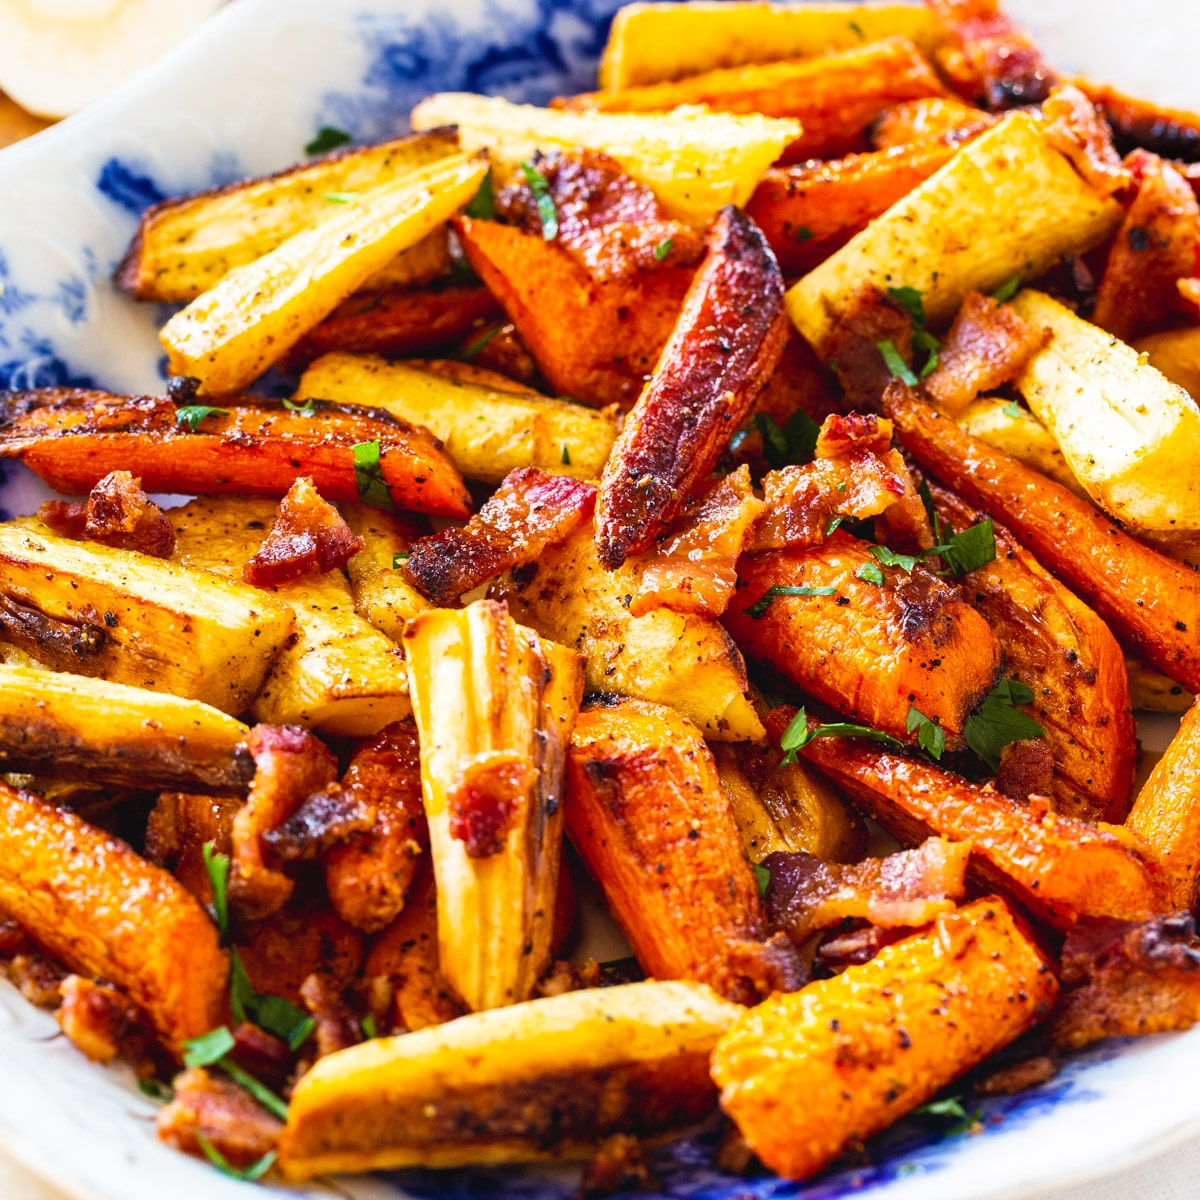 Roasted Carrots and Parsnips on a blue and white serving platter.